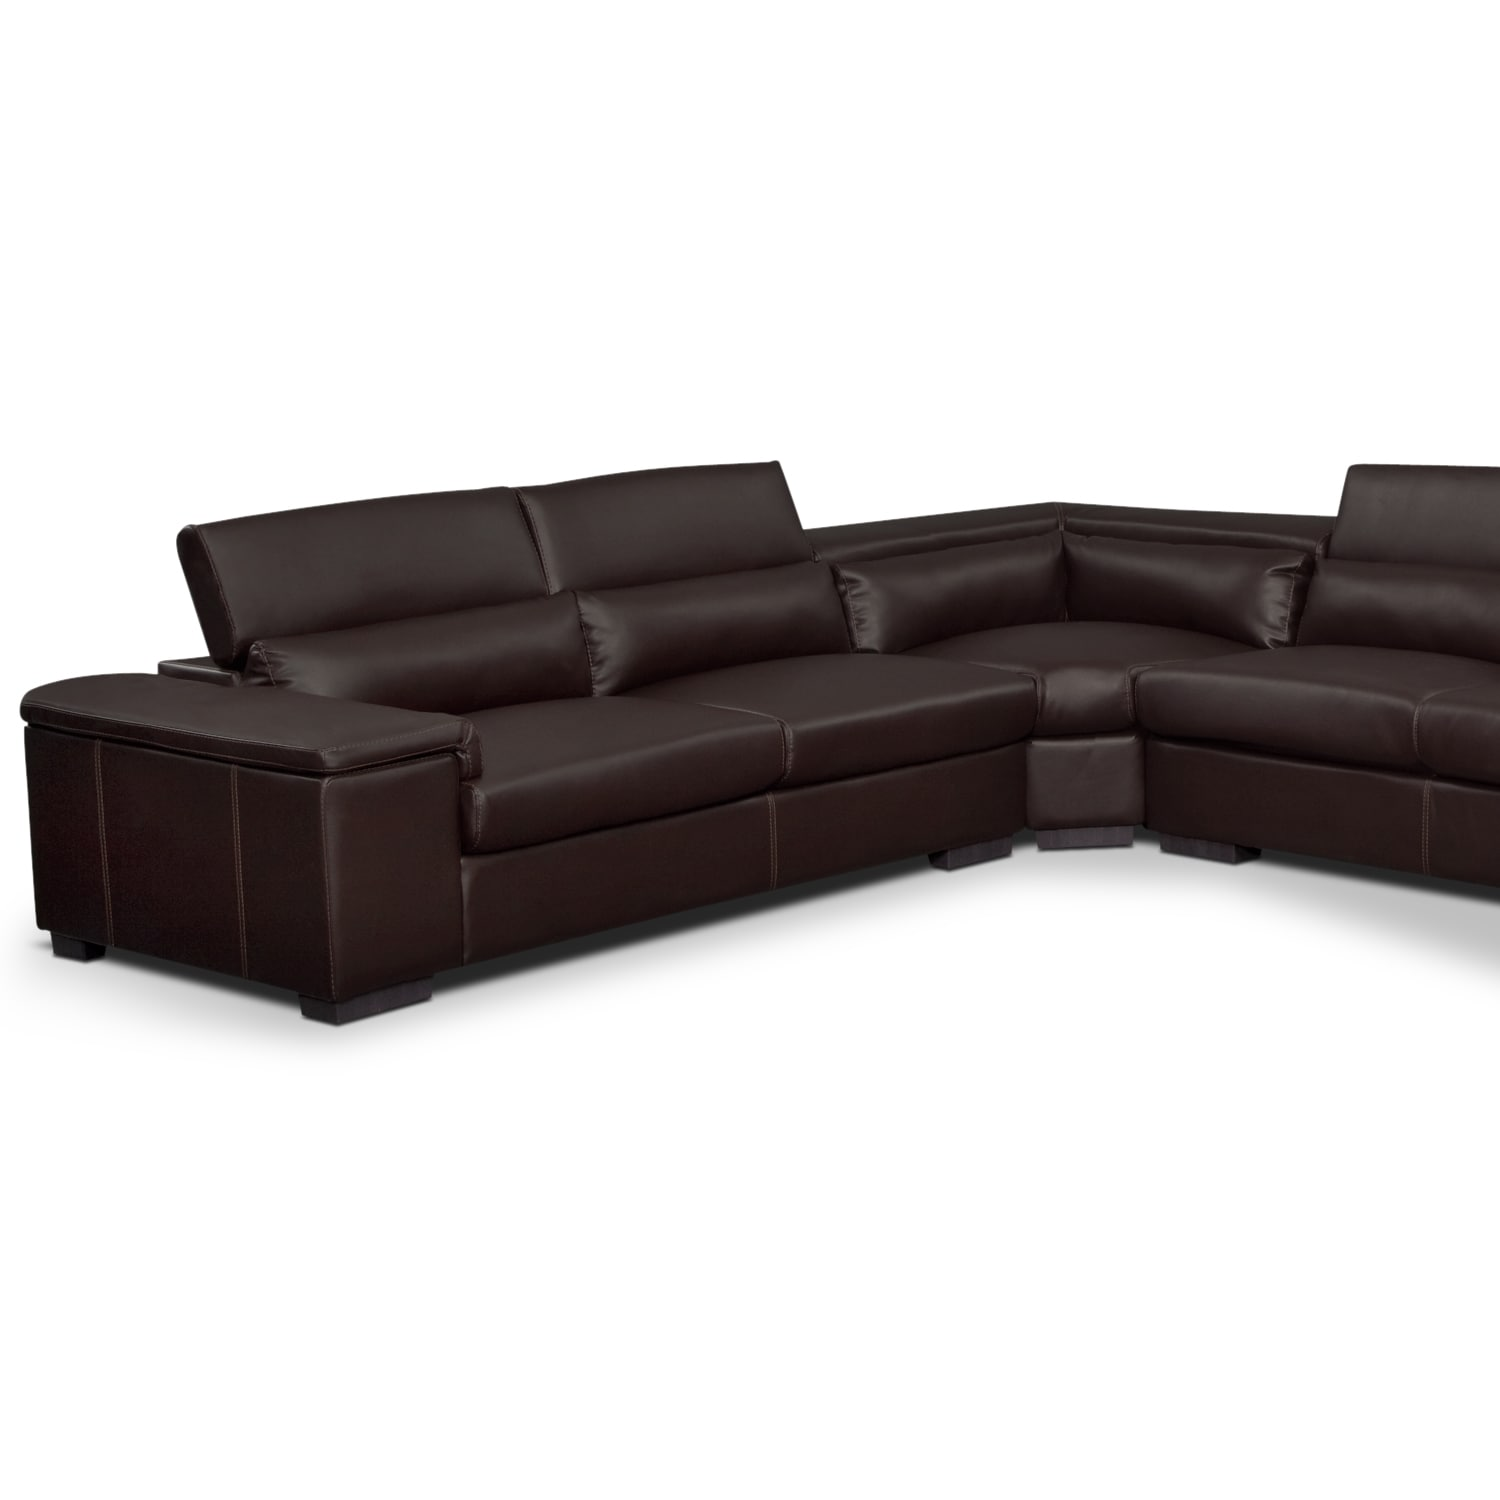 Ventana Ii Leather 4 Pc Sectional Value City Furniture